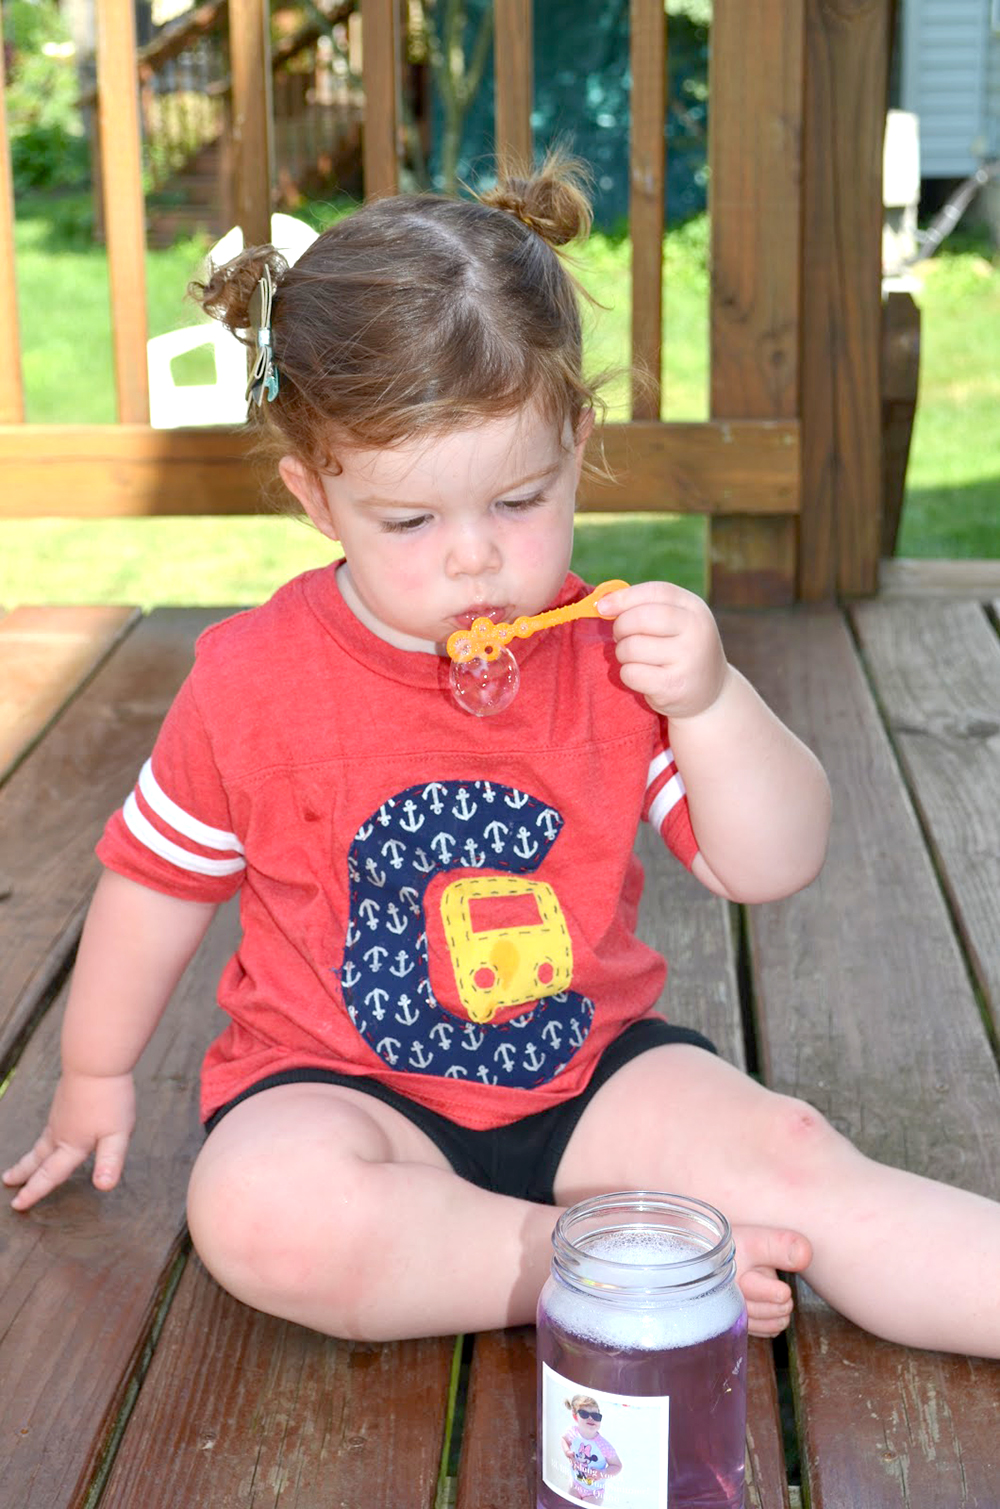 Blowing bubbles with a homemade recipe